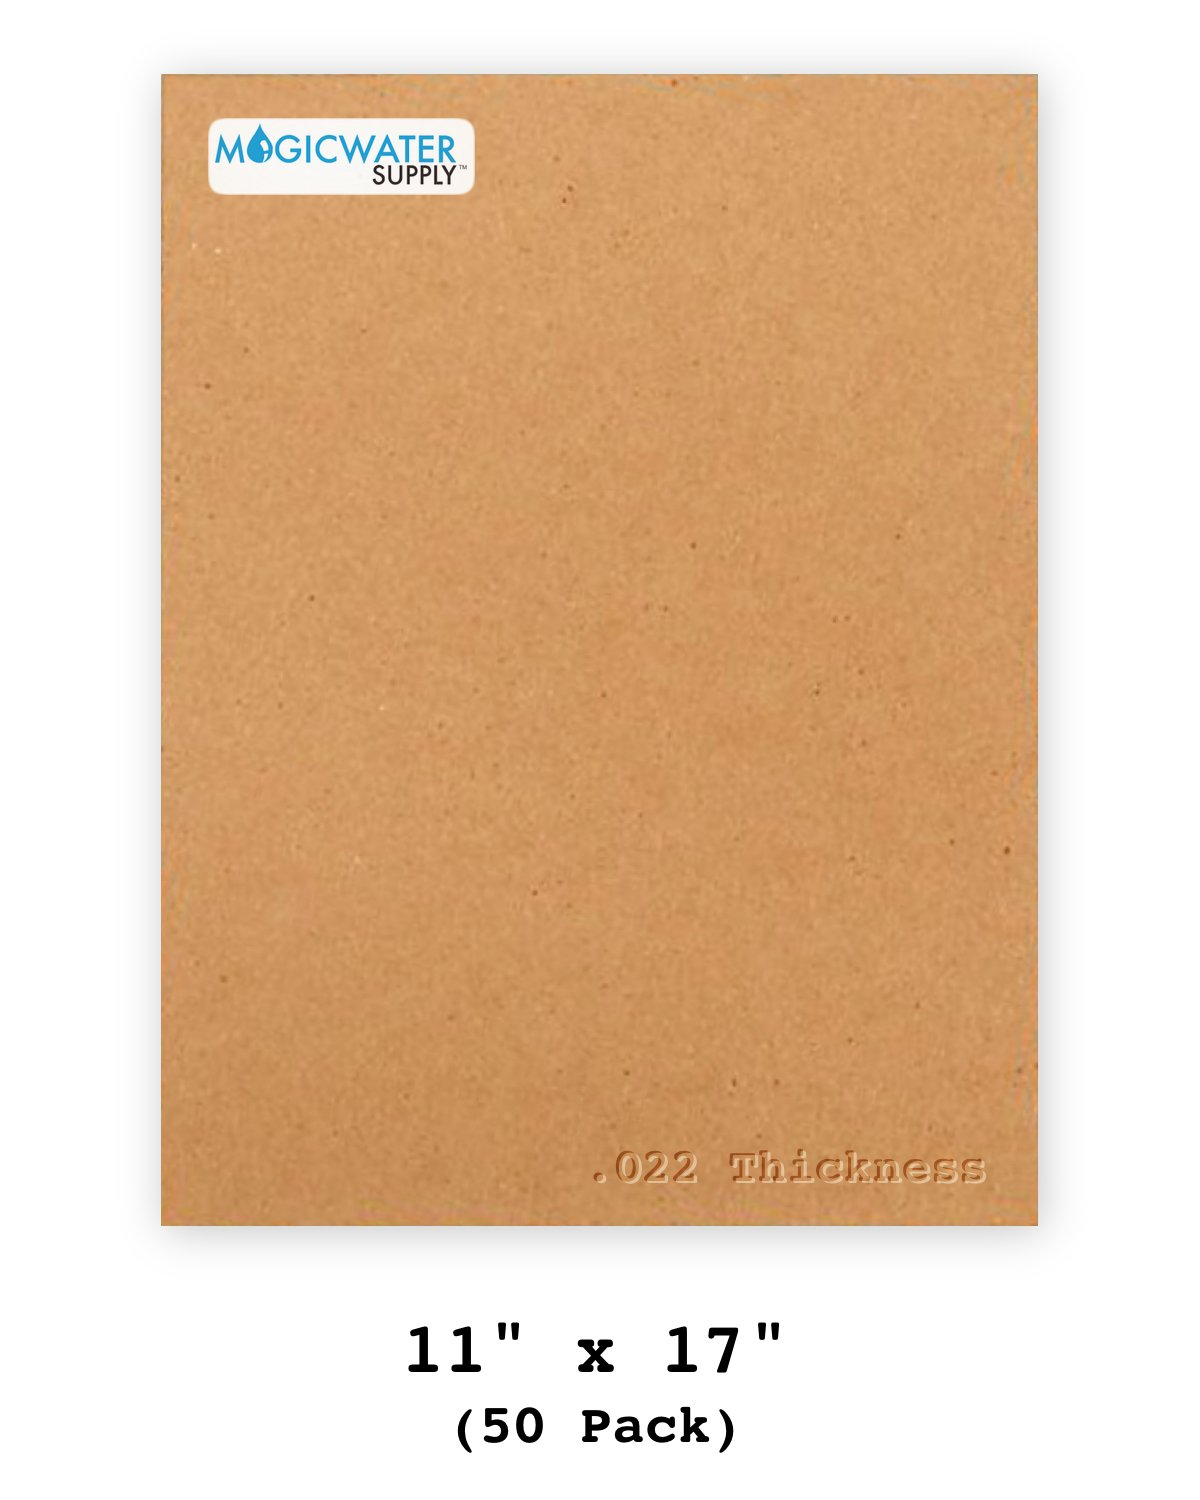 50 Sheets Chipboard 11 x 17 inch - 22pt (Point) Light Weight Brown Kraft Cardboard Scrapbook Sheets & Picture Frame Backing (.022 Caliper Thick) Paper Board | MagicWater Supply MWS